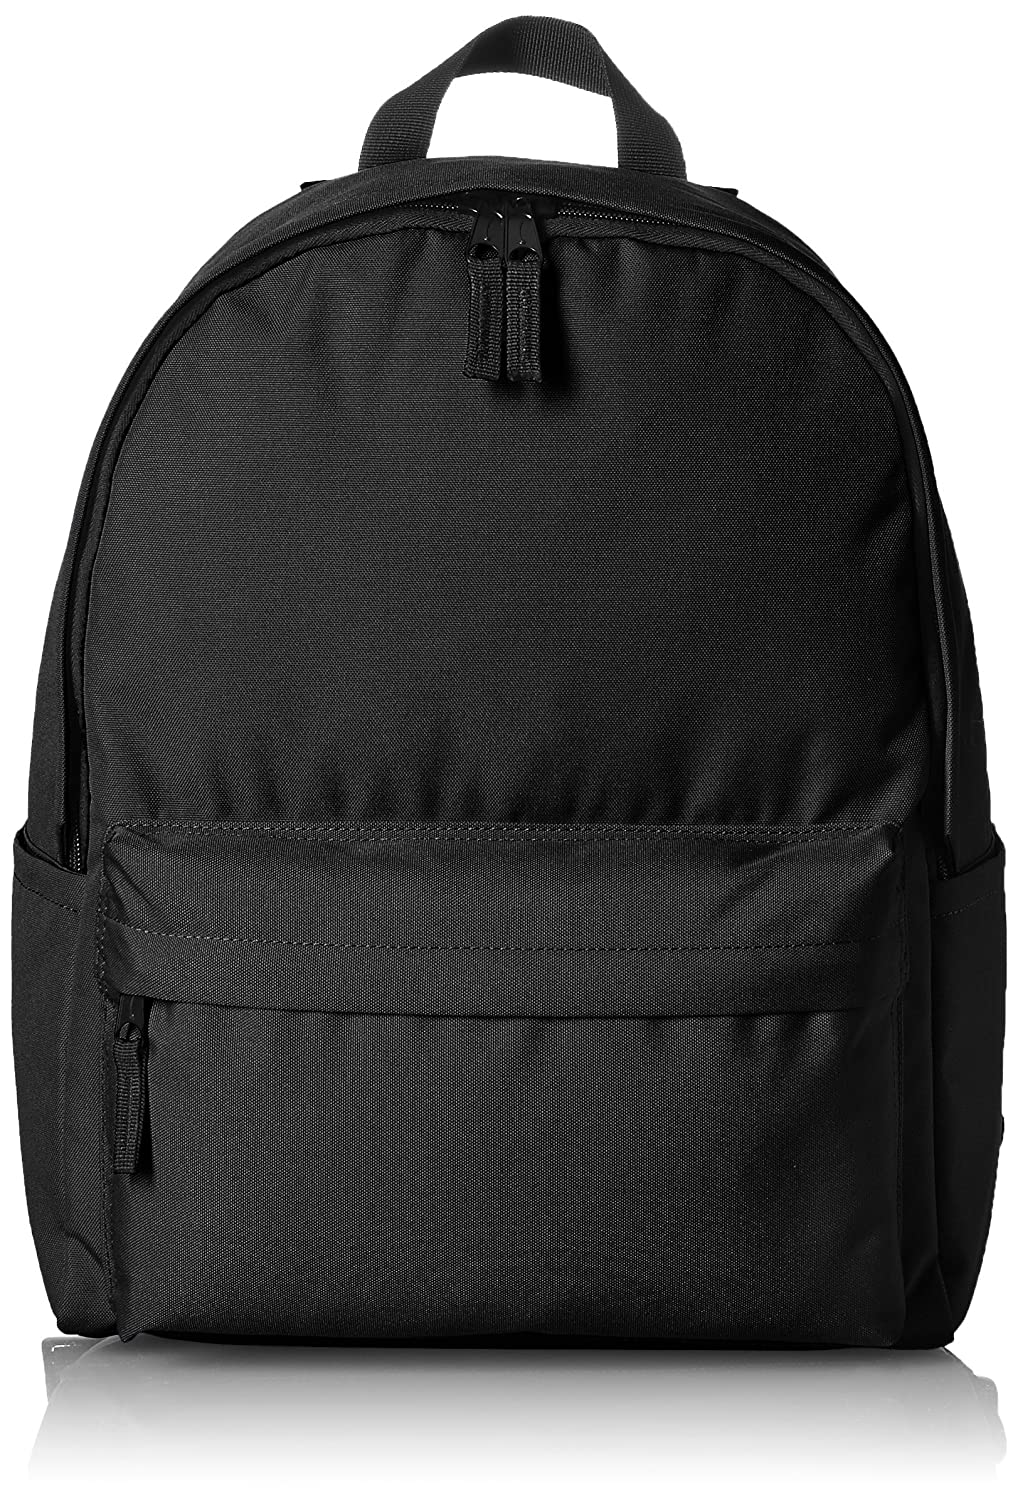 9 Best Backpacks For High School   College of 2019  9a500eddc3627